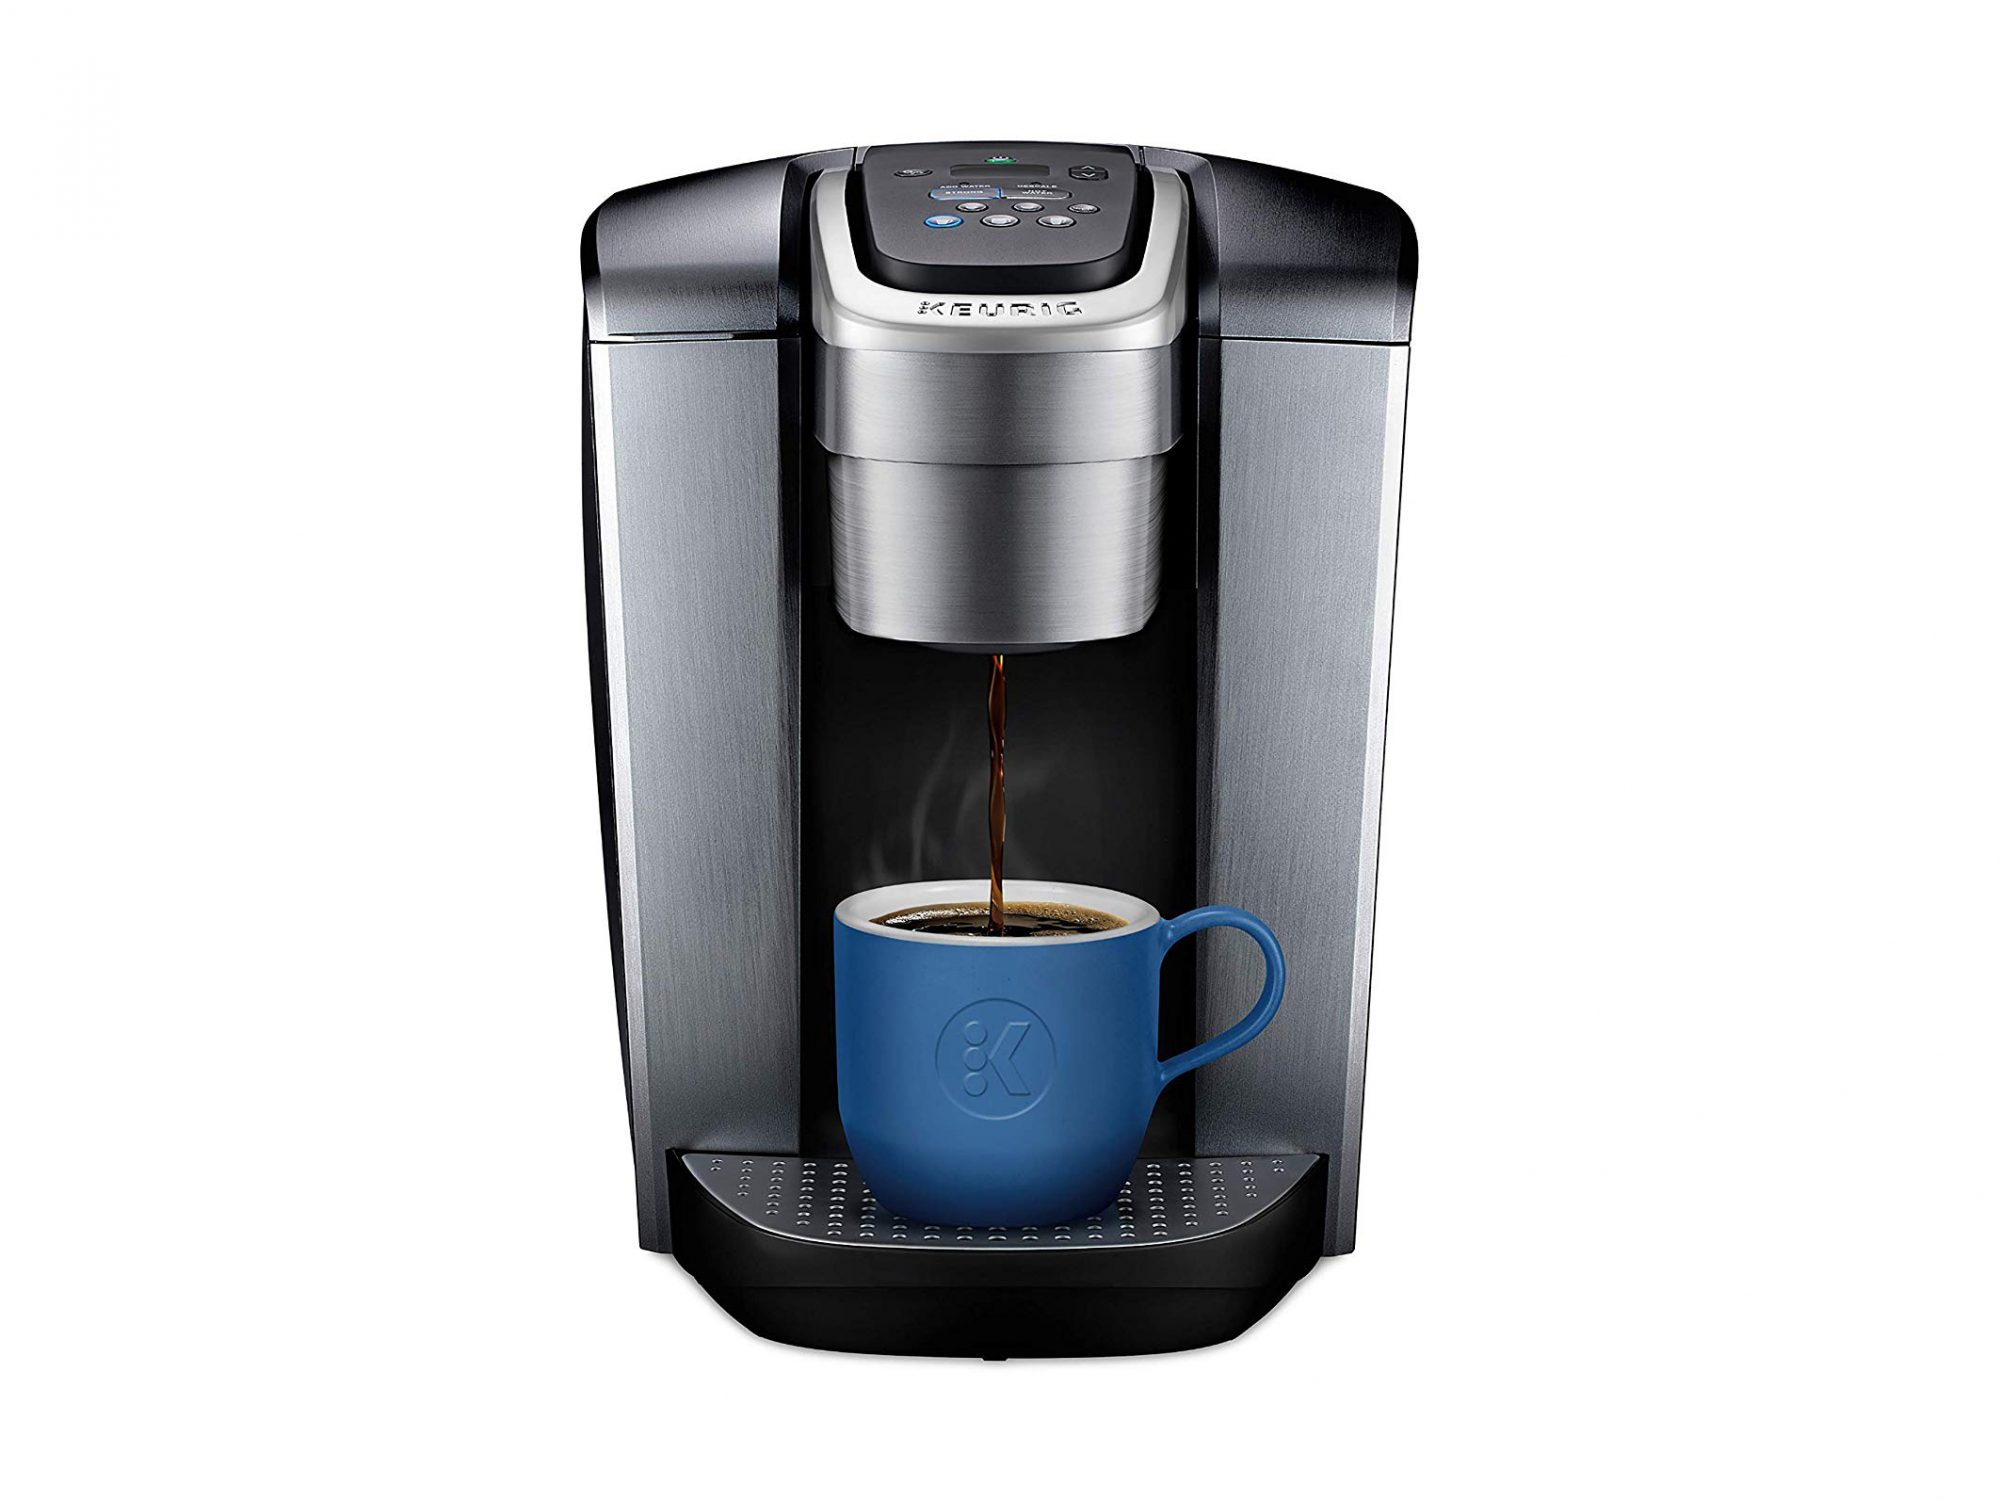 The Best Keurig Coffee Maker Deals for Black Friday 2019 ...